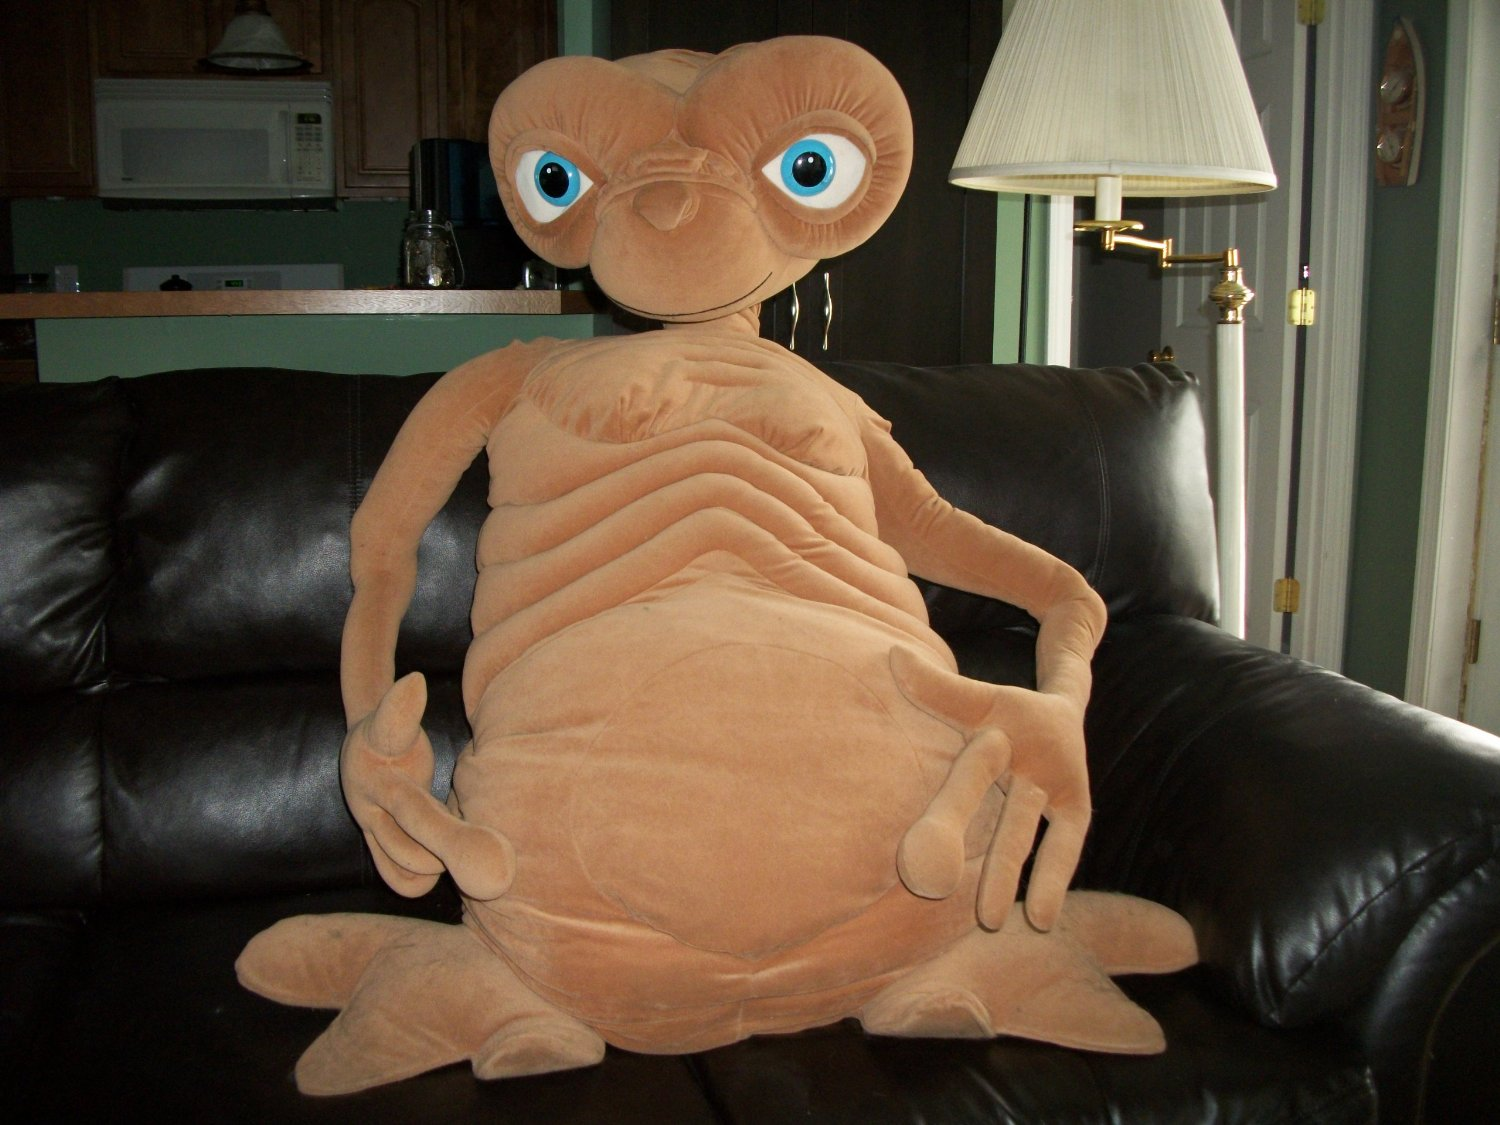 Massive E.T. doll | Sheknows.com